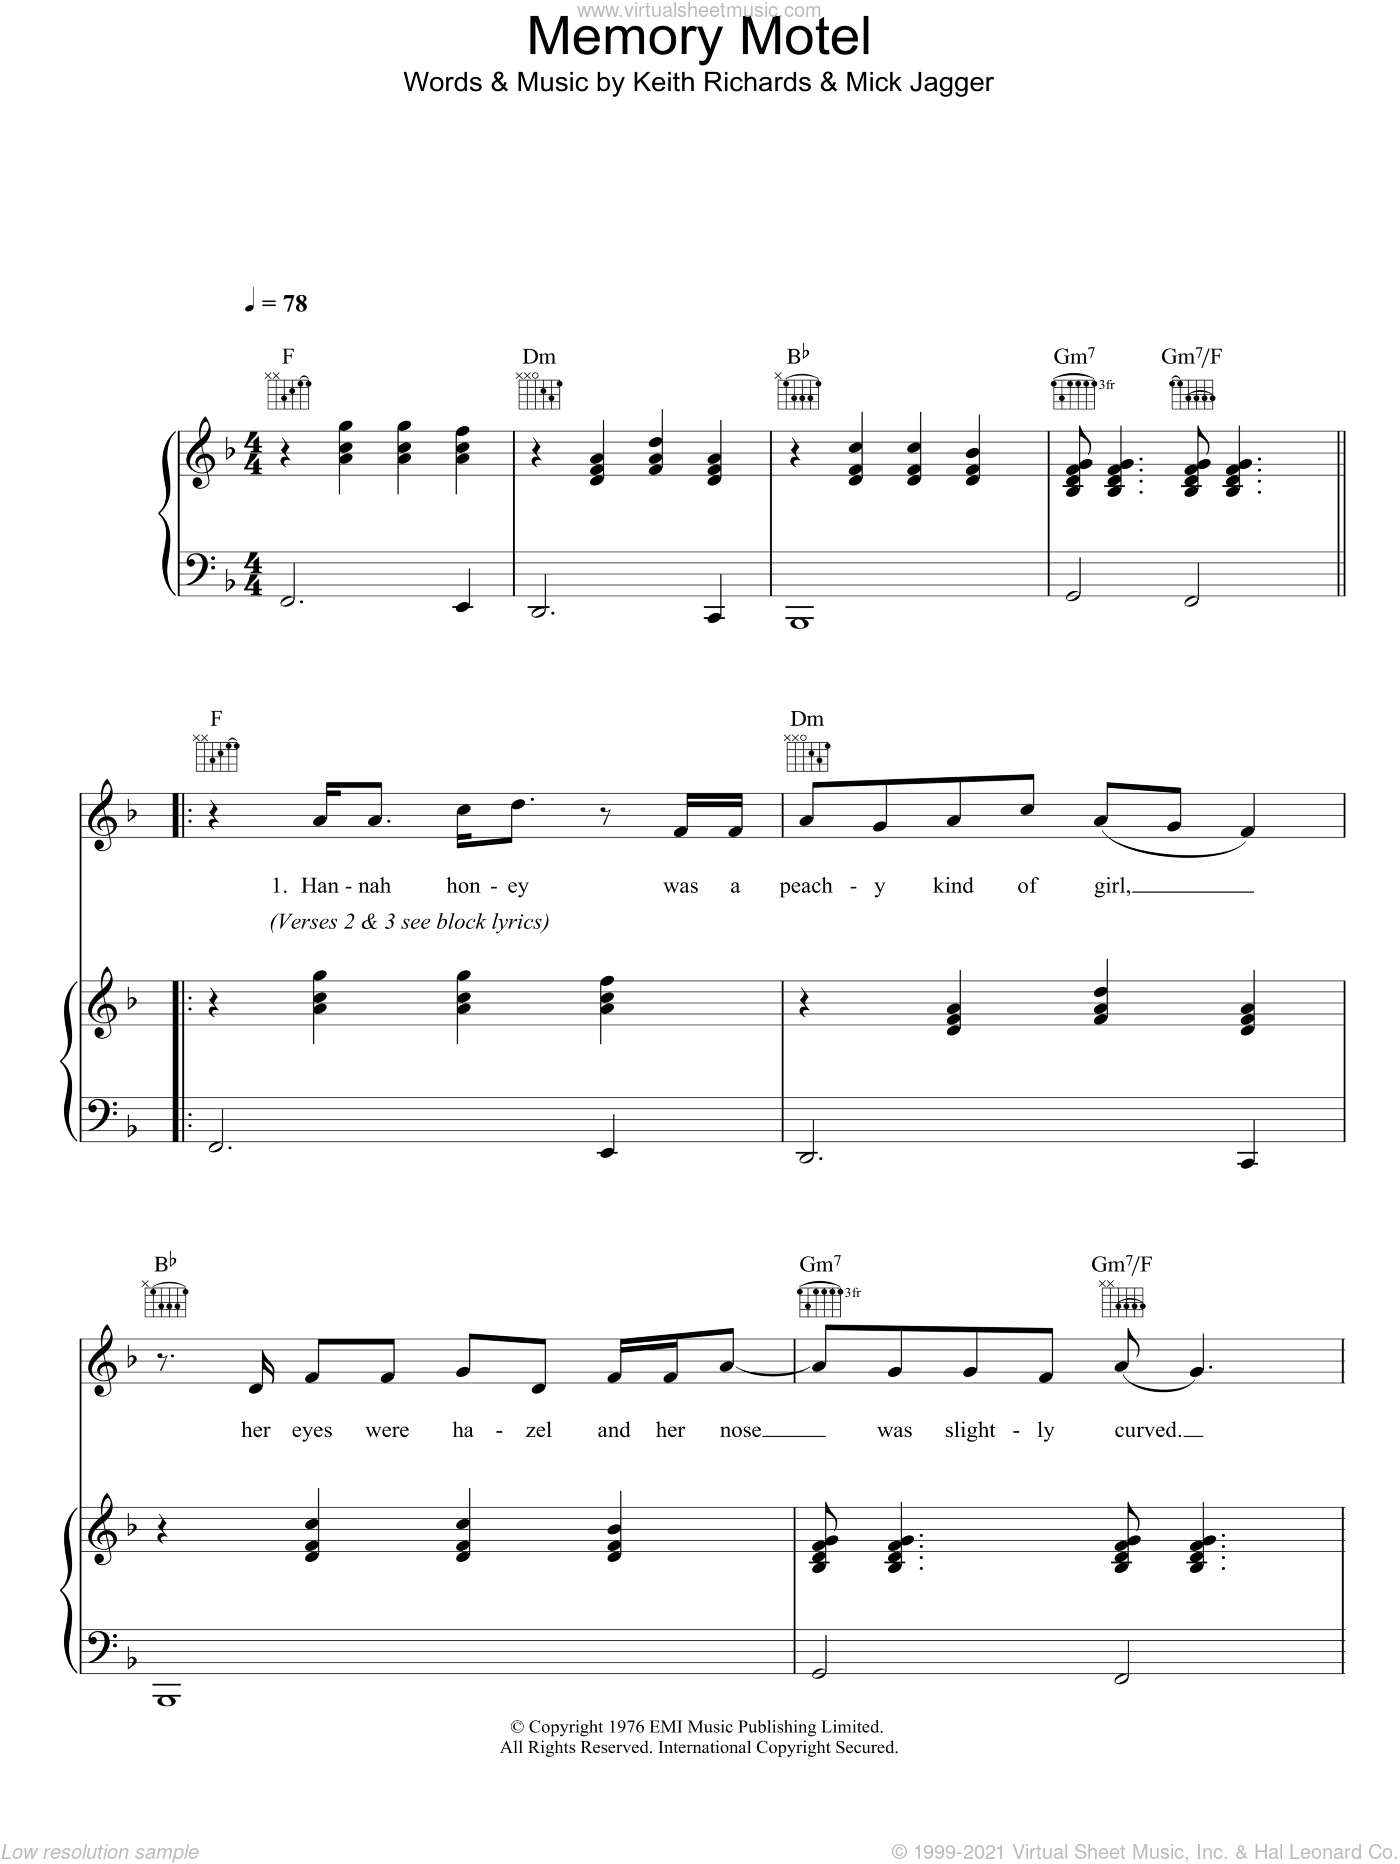 Memory Motel sheet music for voice, piano or guitar by The Rolling Stones, Keith Richards and Mick Jagger, intermediate